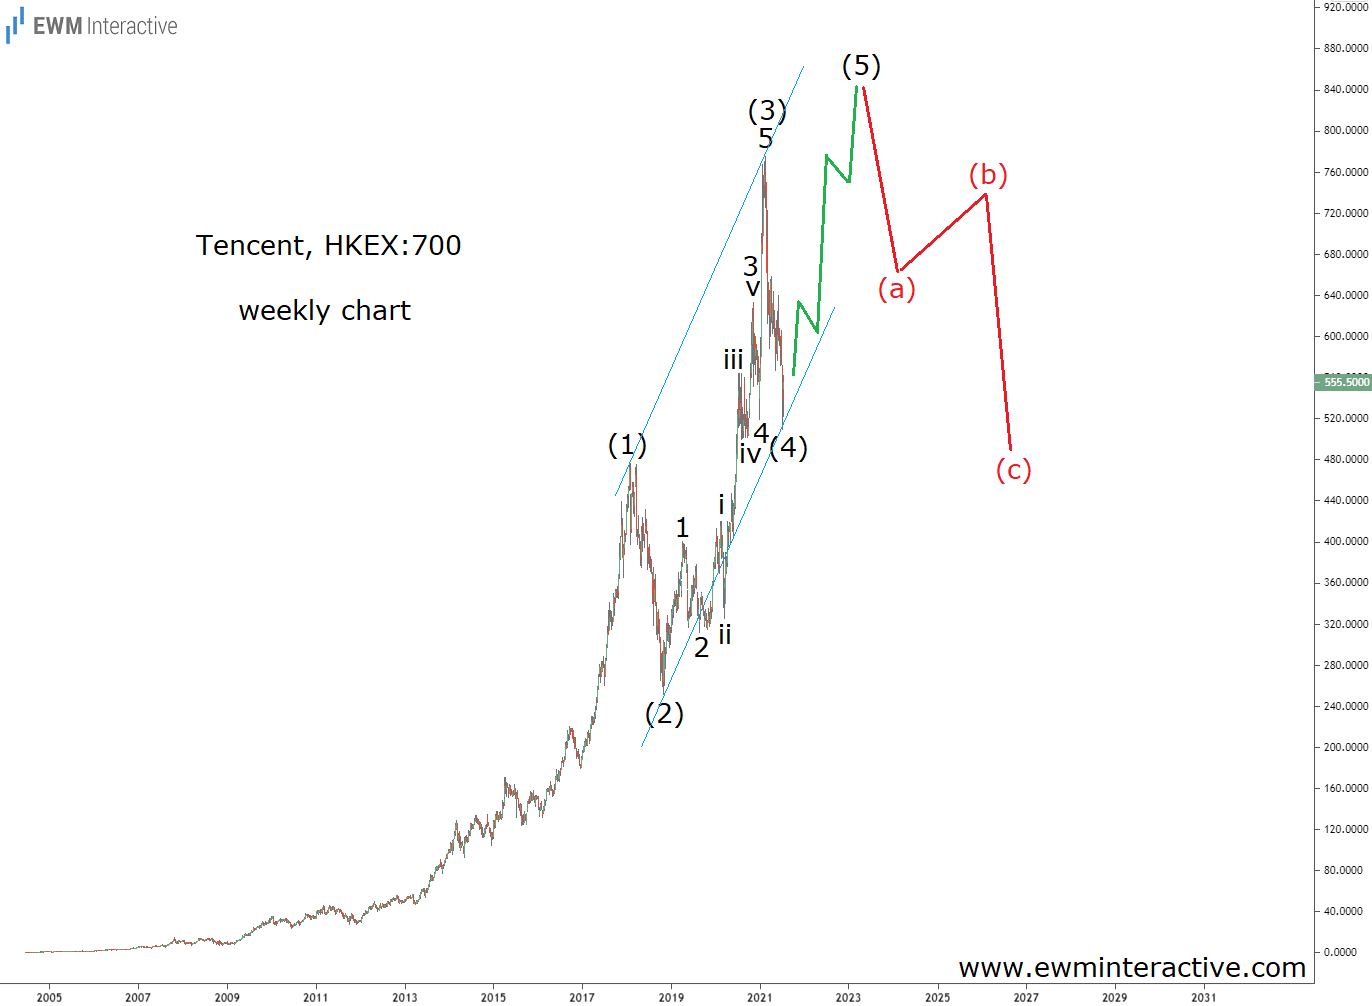 Tencent stock to start recovering soon